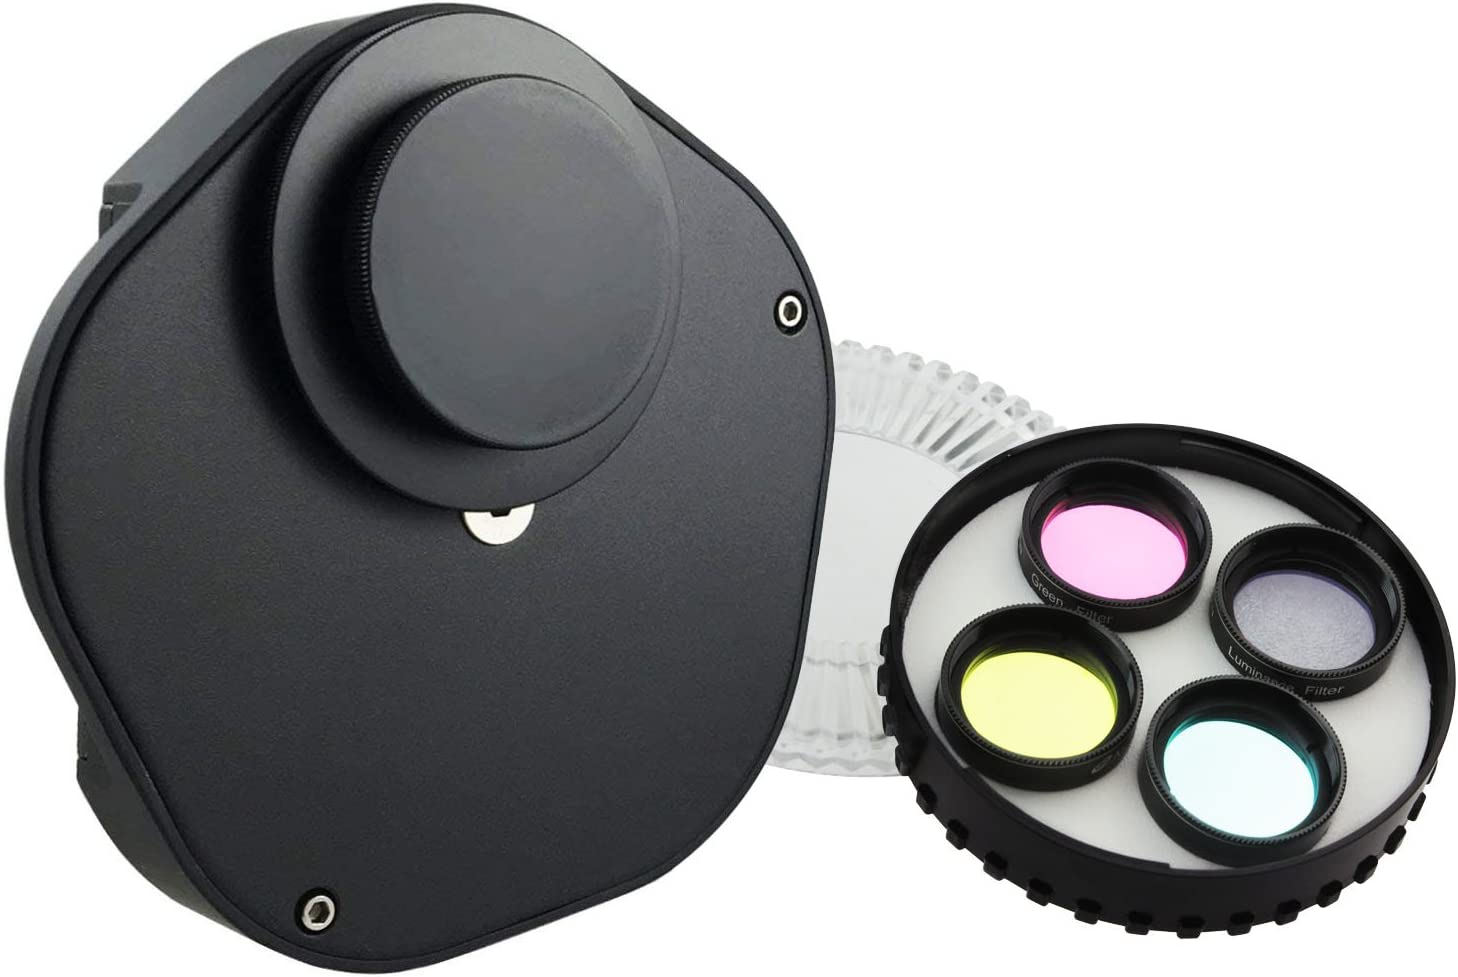 Astromania 1.25 Multiple 9-Position Filter Wheel for Telescope Allowing You to Image Without Any Reflections or Stray Light